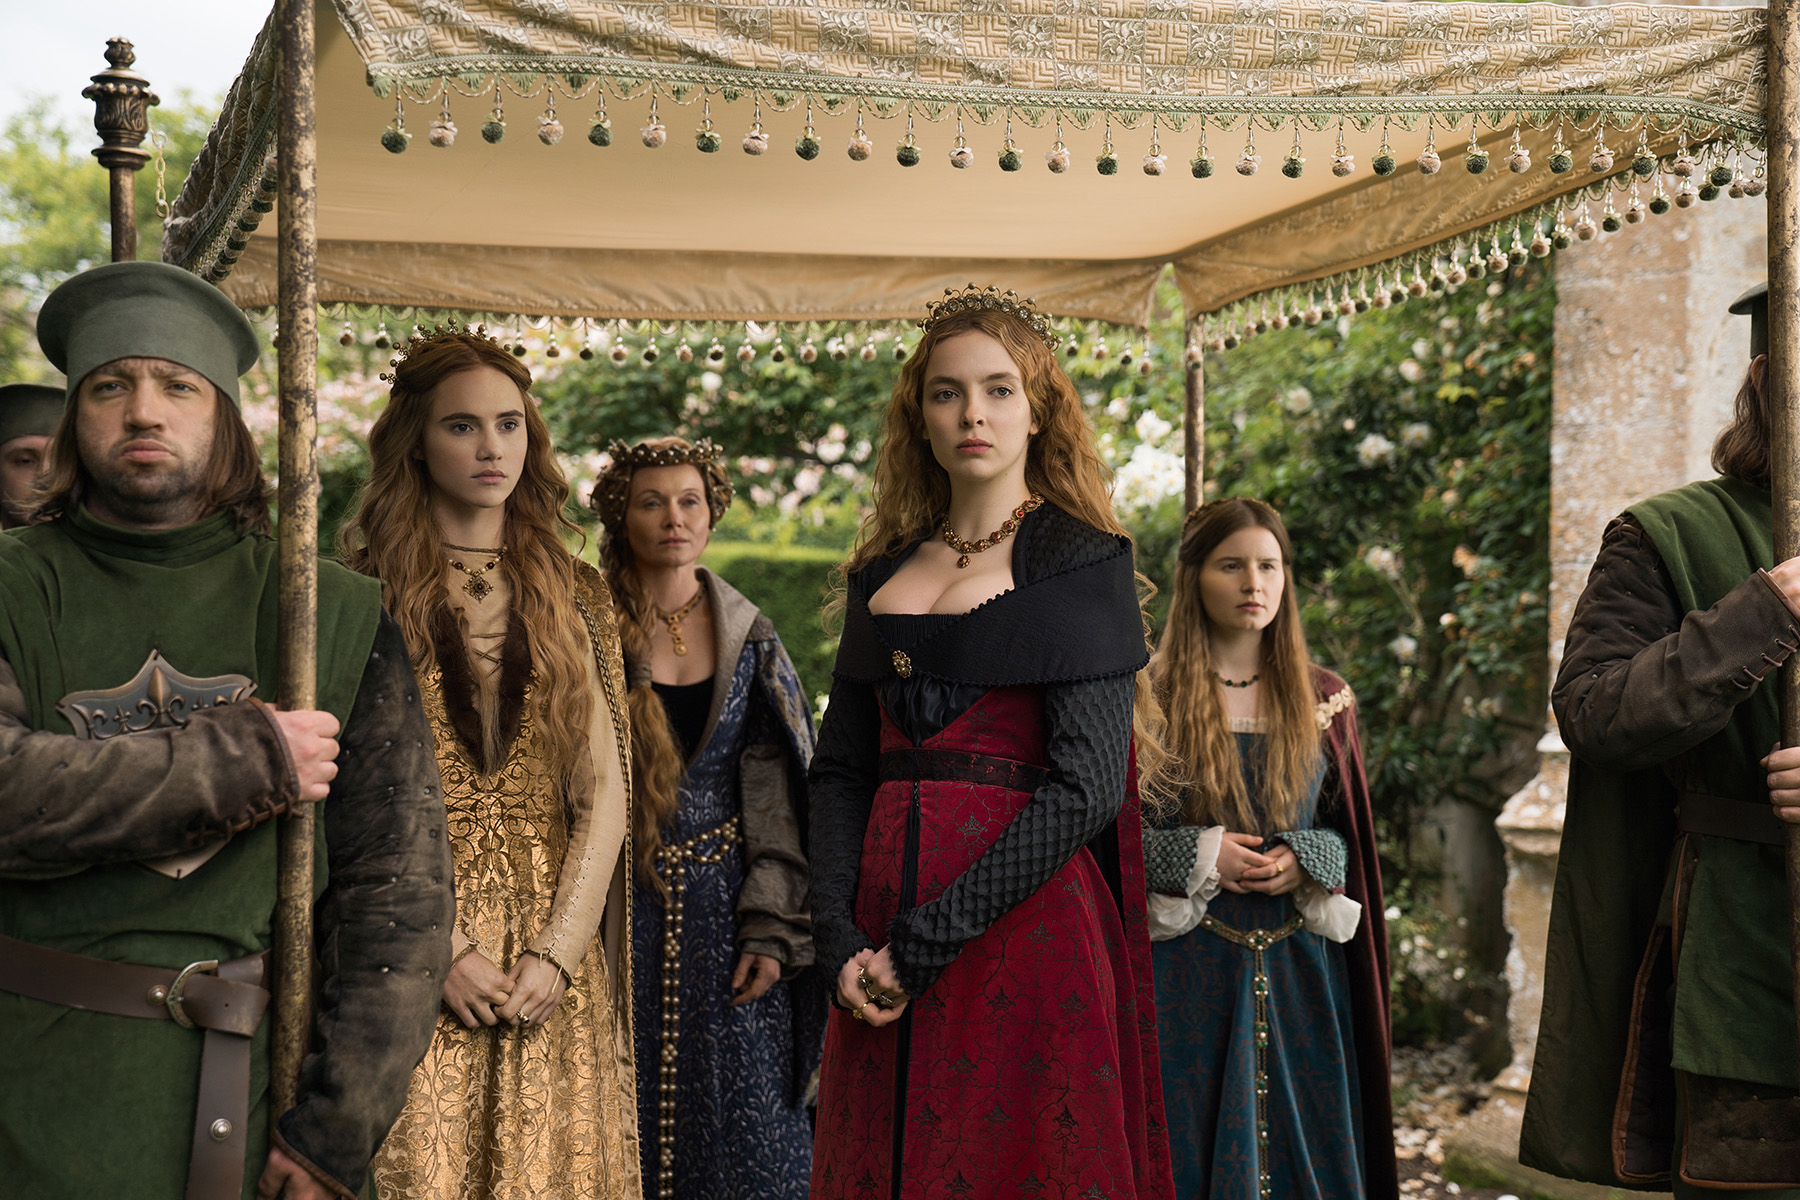 Essie Davis, Jodie Comer, Suki Waterhouse, and Rebecca Benson in The White Princess (2017)